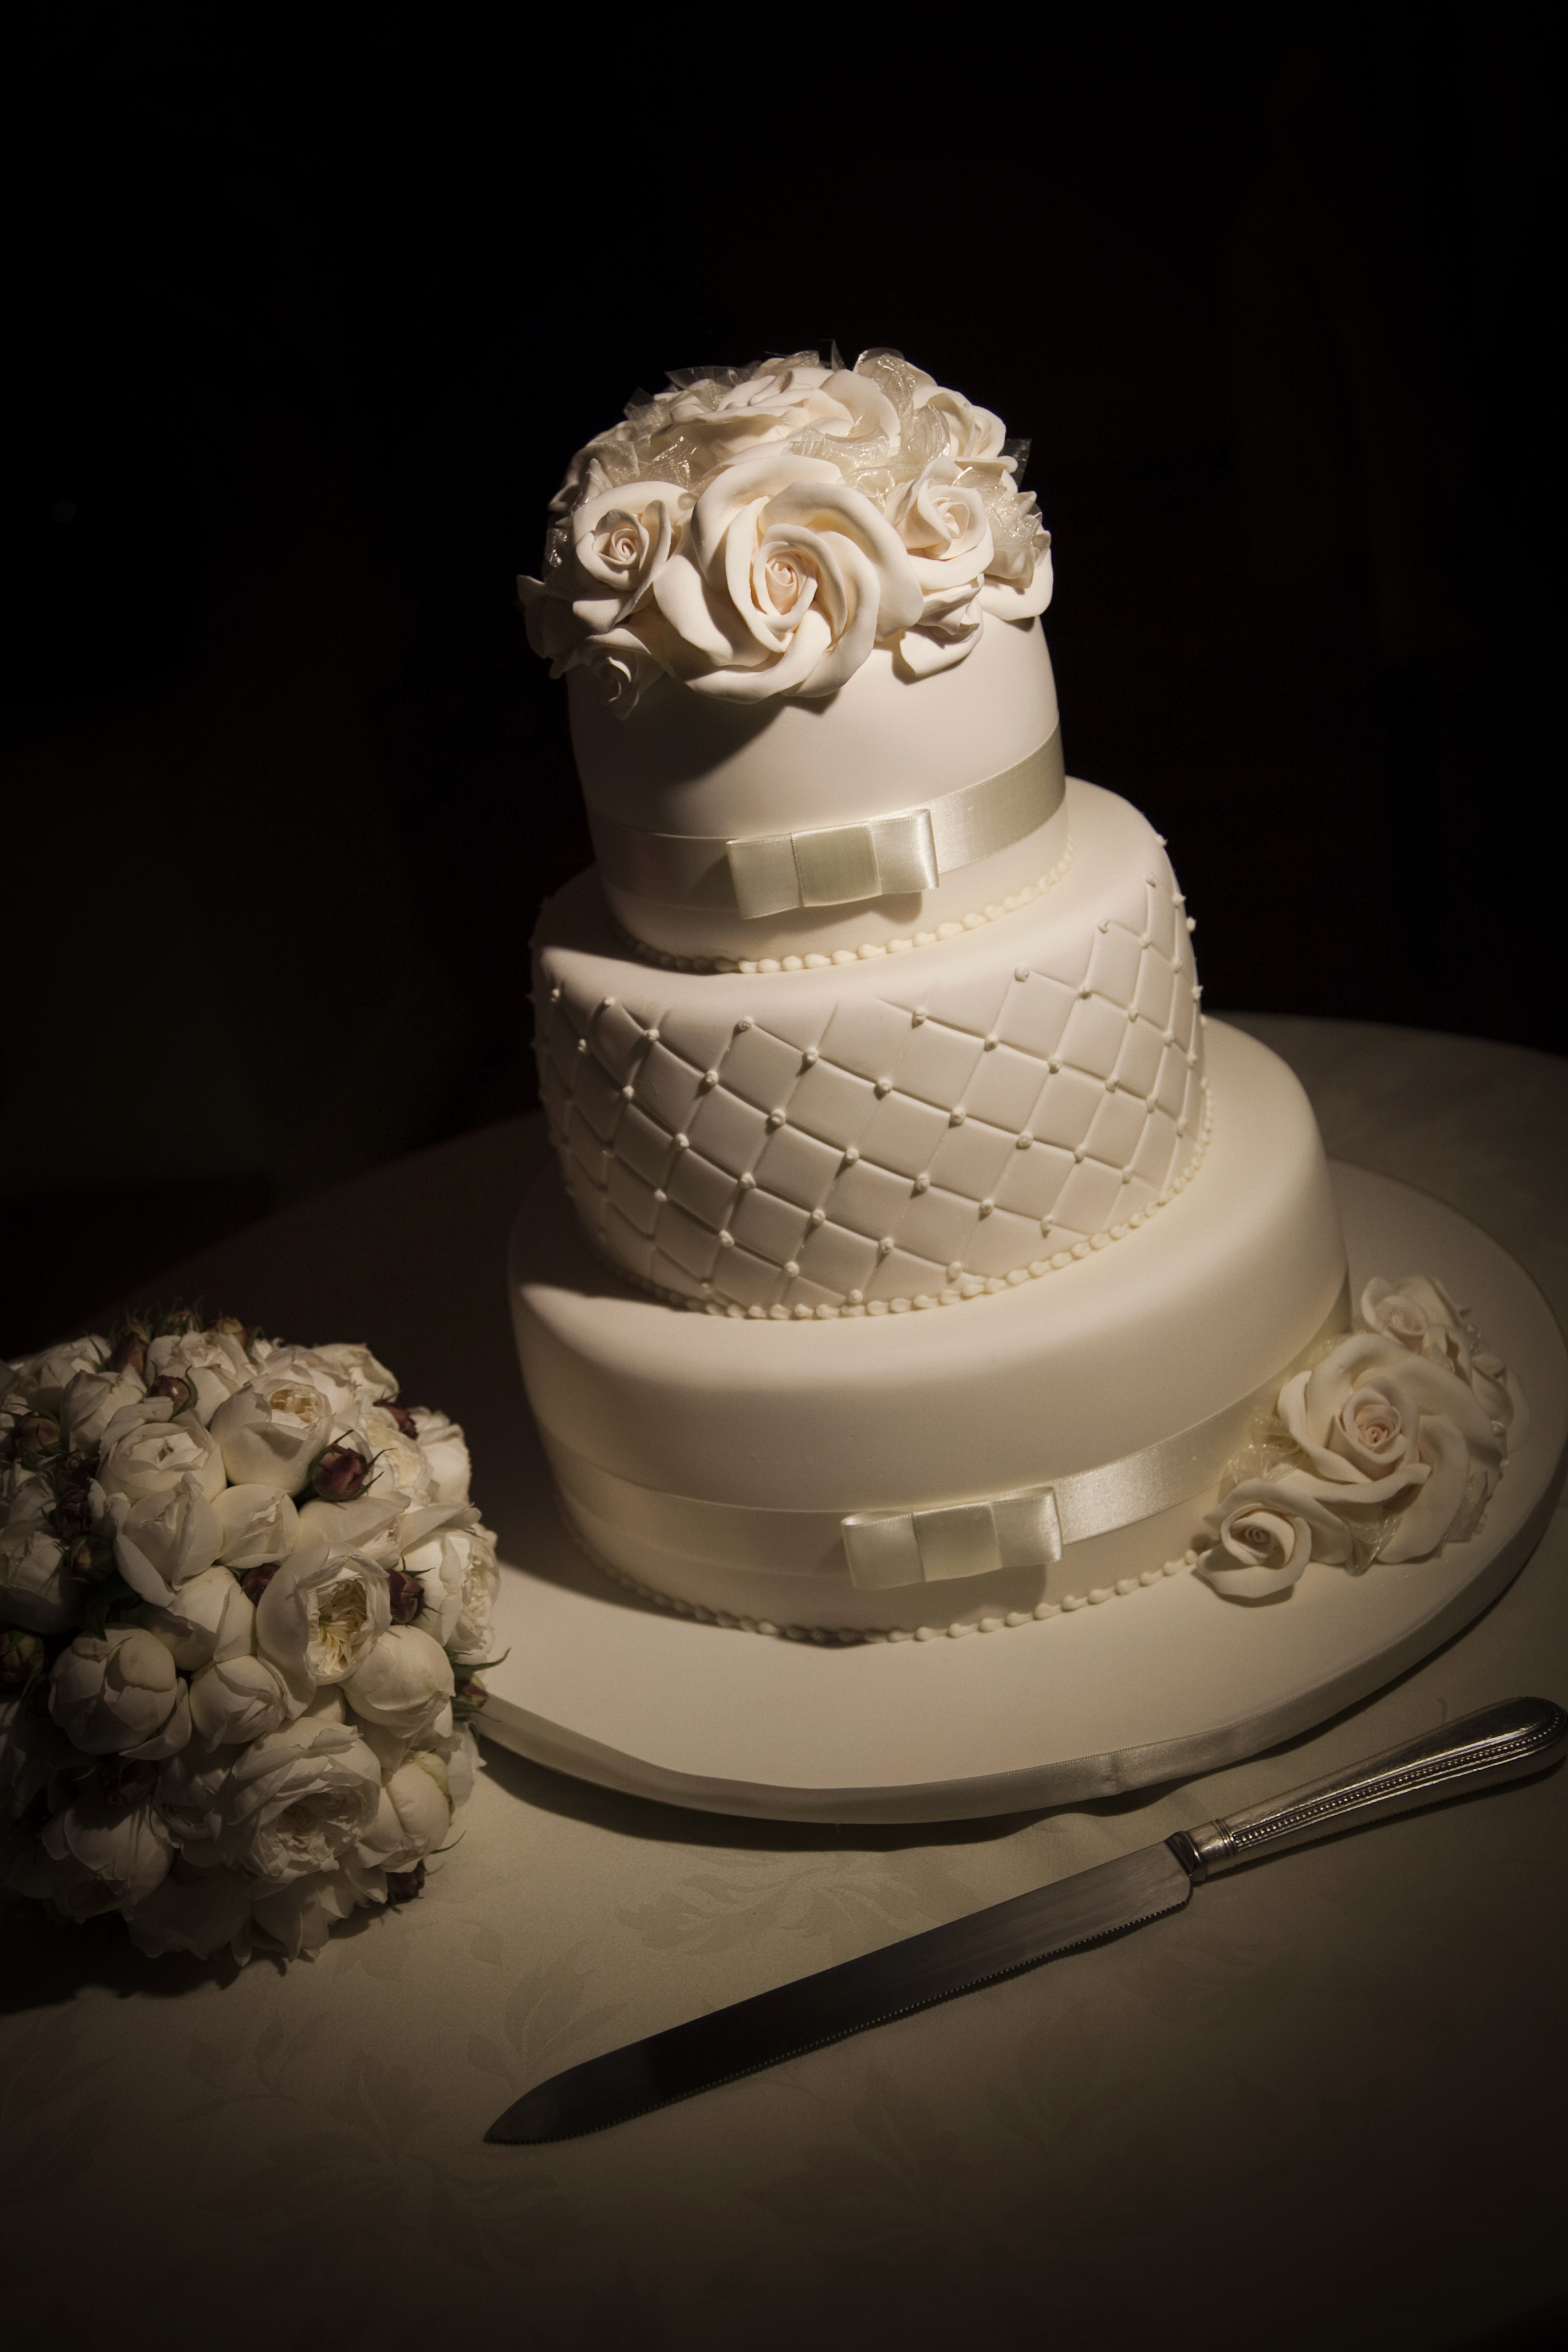 Elegant Cake submited images